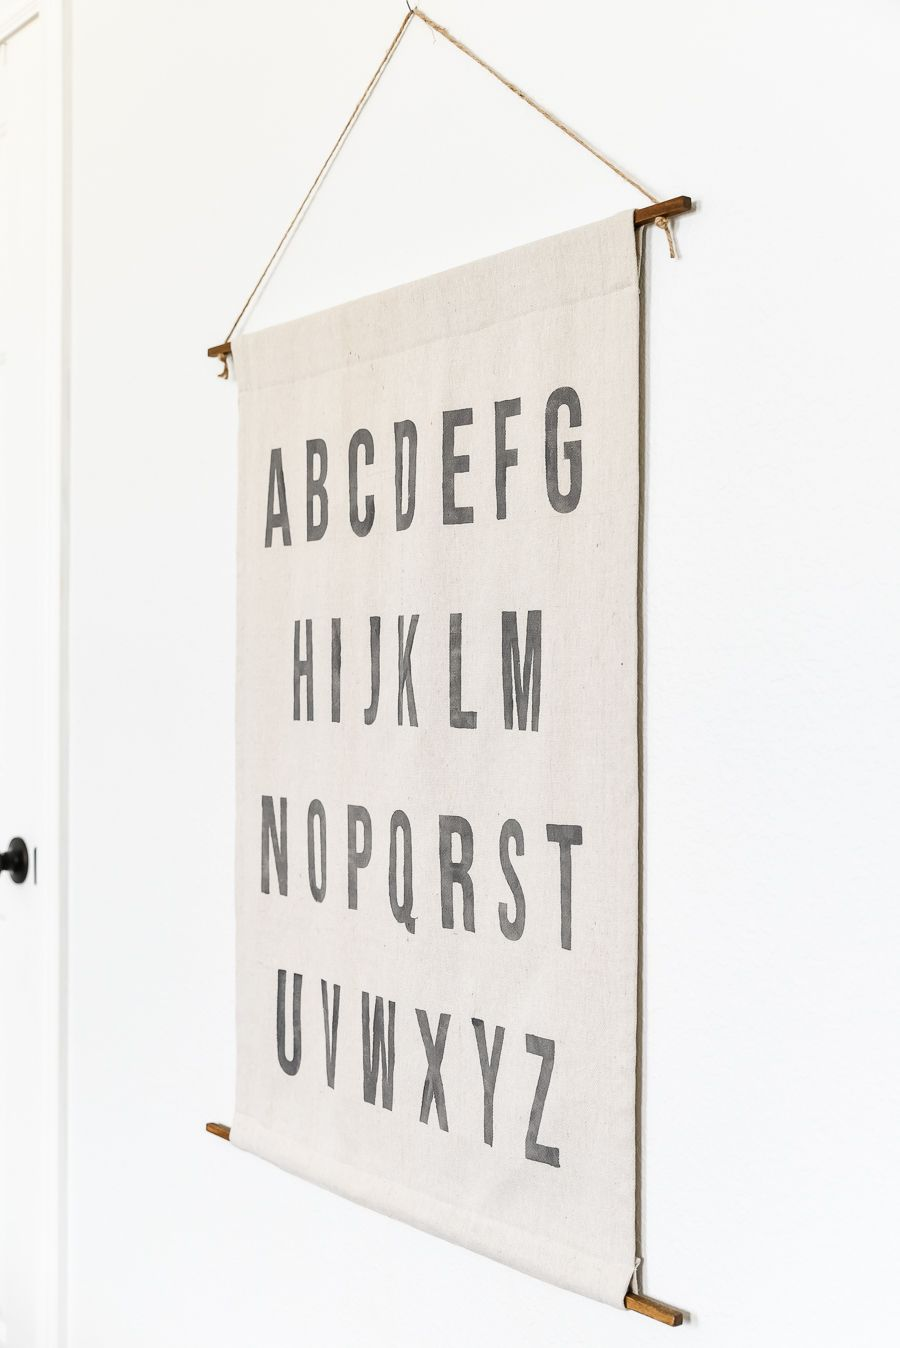 Diy Alphabet Wall Hanging From Canvas Drop Cloth Emily S Project List In 2020 Canvas Drop Cloths Drop Cloth Wall Hanging Diy